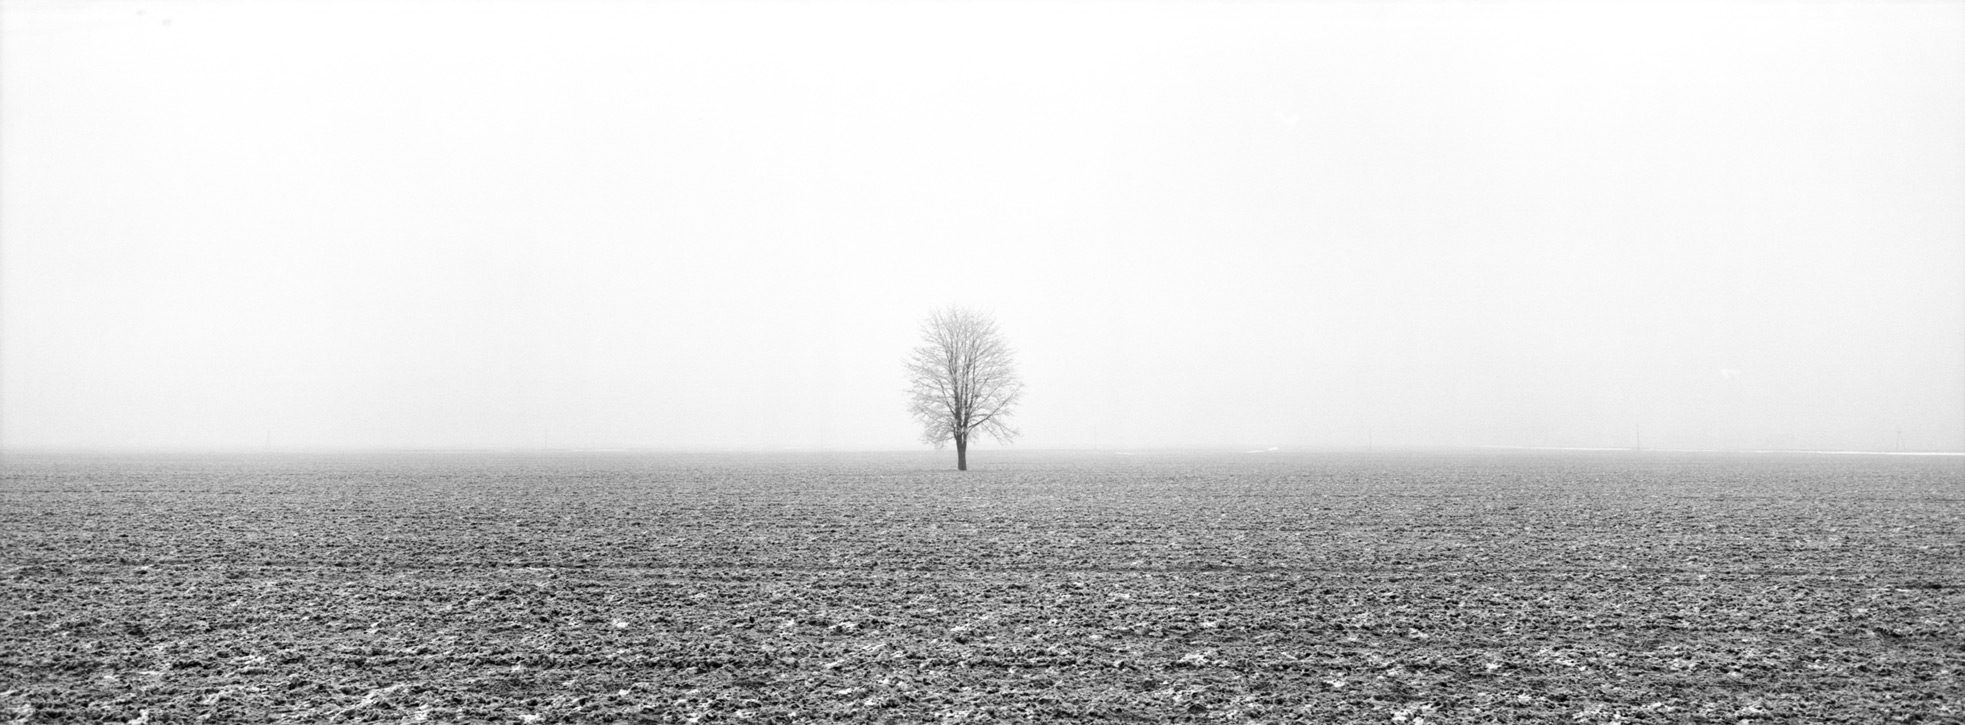 Lonely Tree near Lisewo f = 8, exp = 1 / 90s